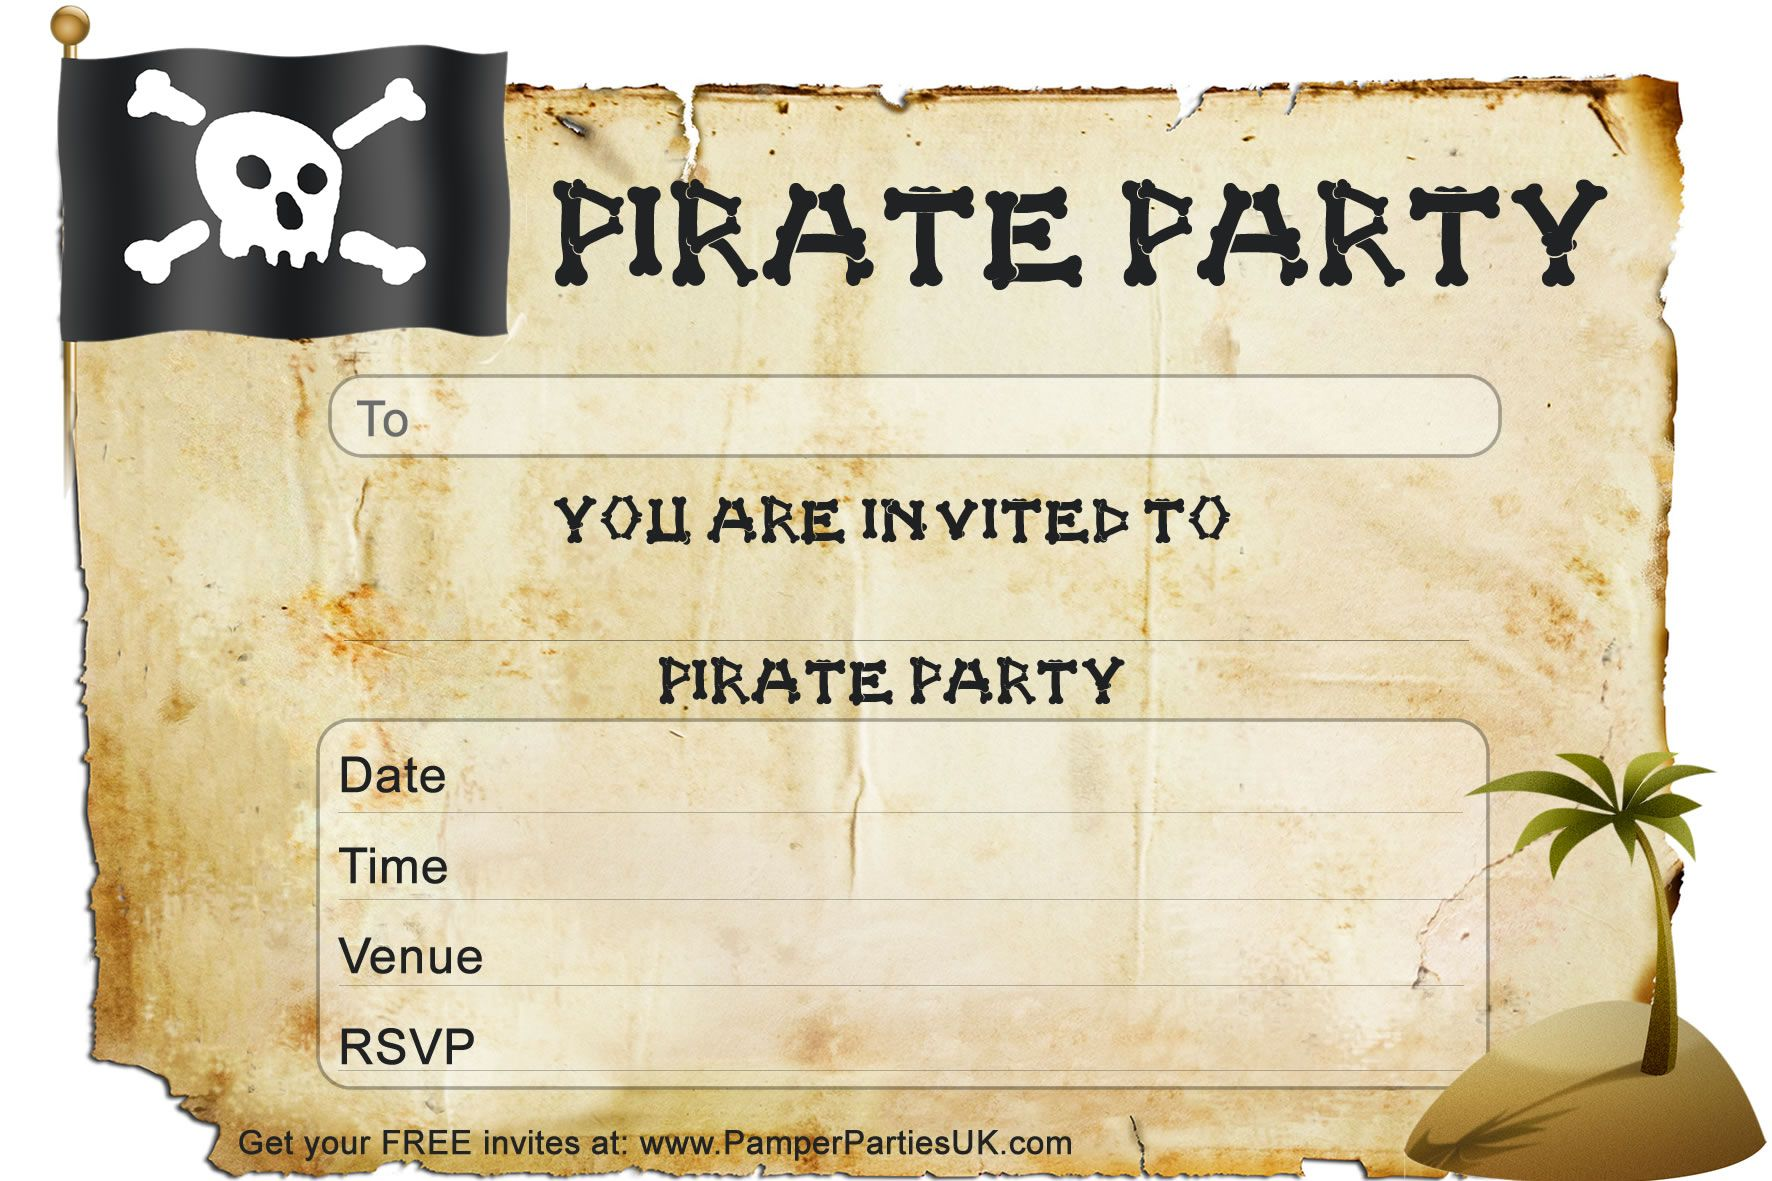 pirate birthday party invitation template free ; Efbeedfcdbadcad-New-Pirate-Birthday-Invitations-Template